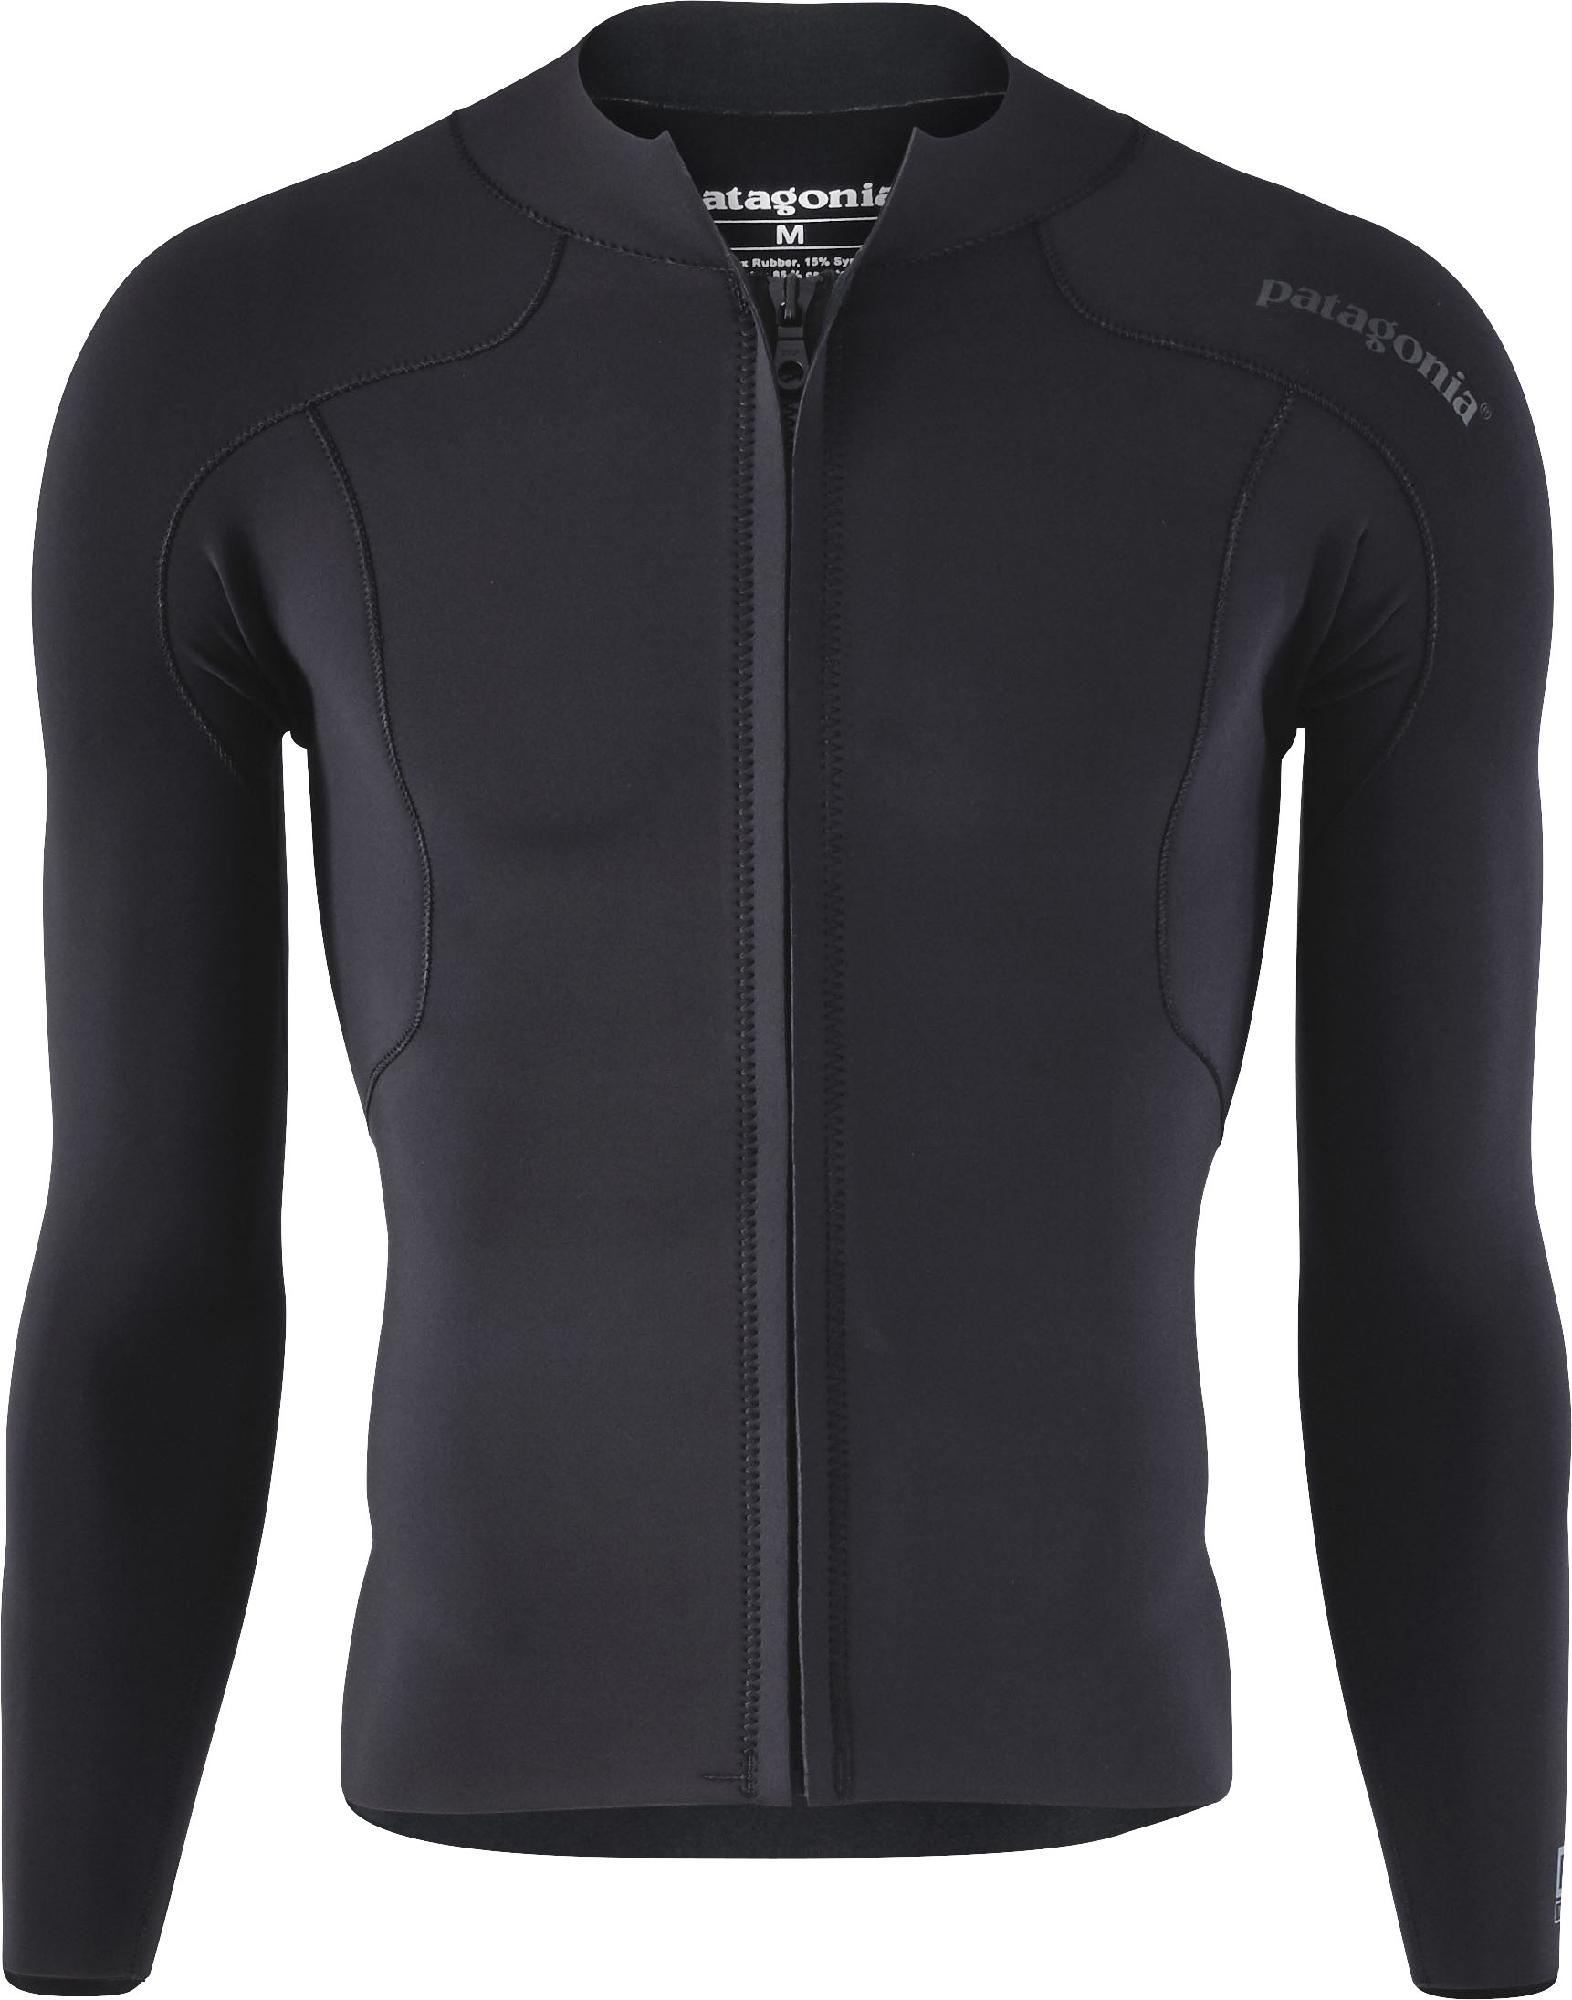 Patagonia R1 Lite Yulex Front-Zip Wetsuit Top